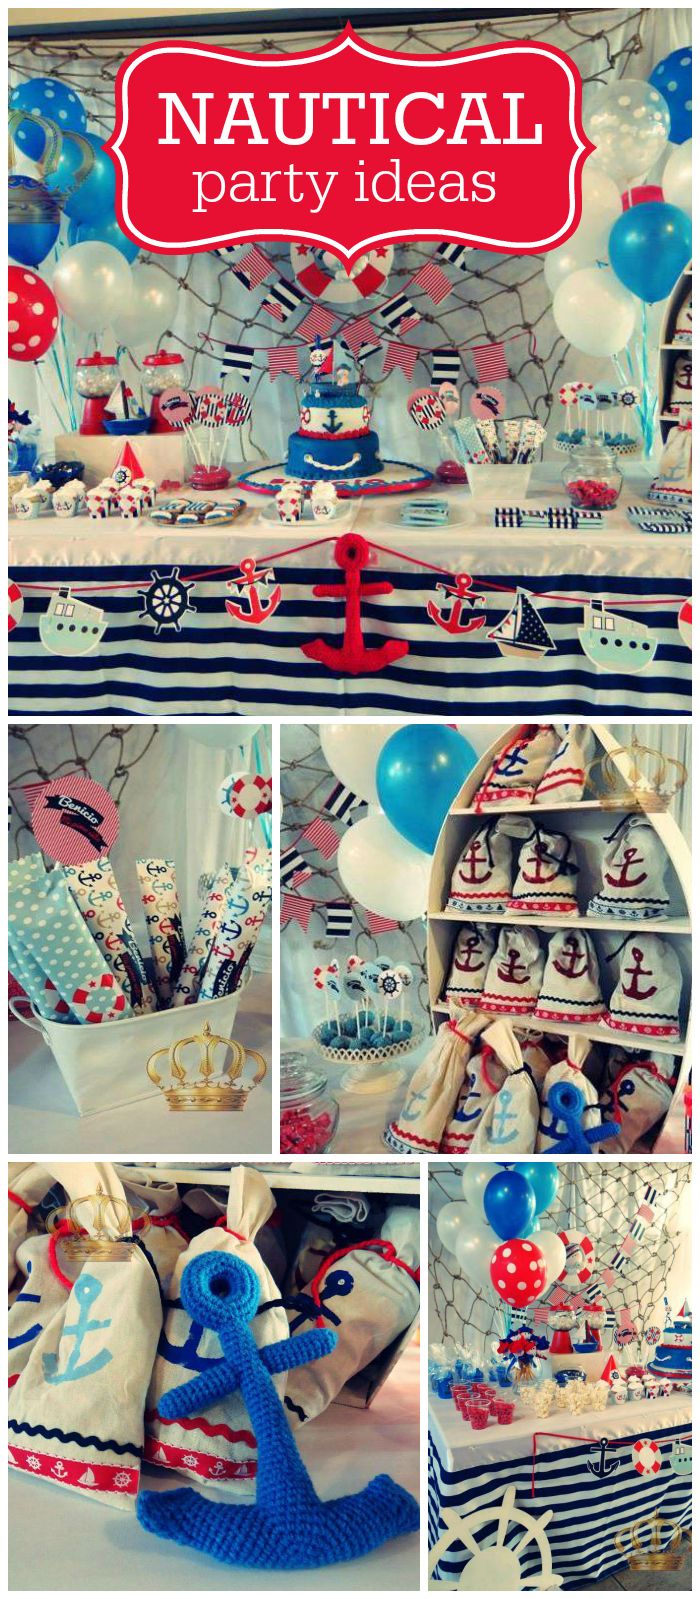 A nautical themed boy birthday party in blue, white and red with seaside treats and decorations! See more party planning ideas at CatchMyParty.com!